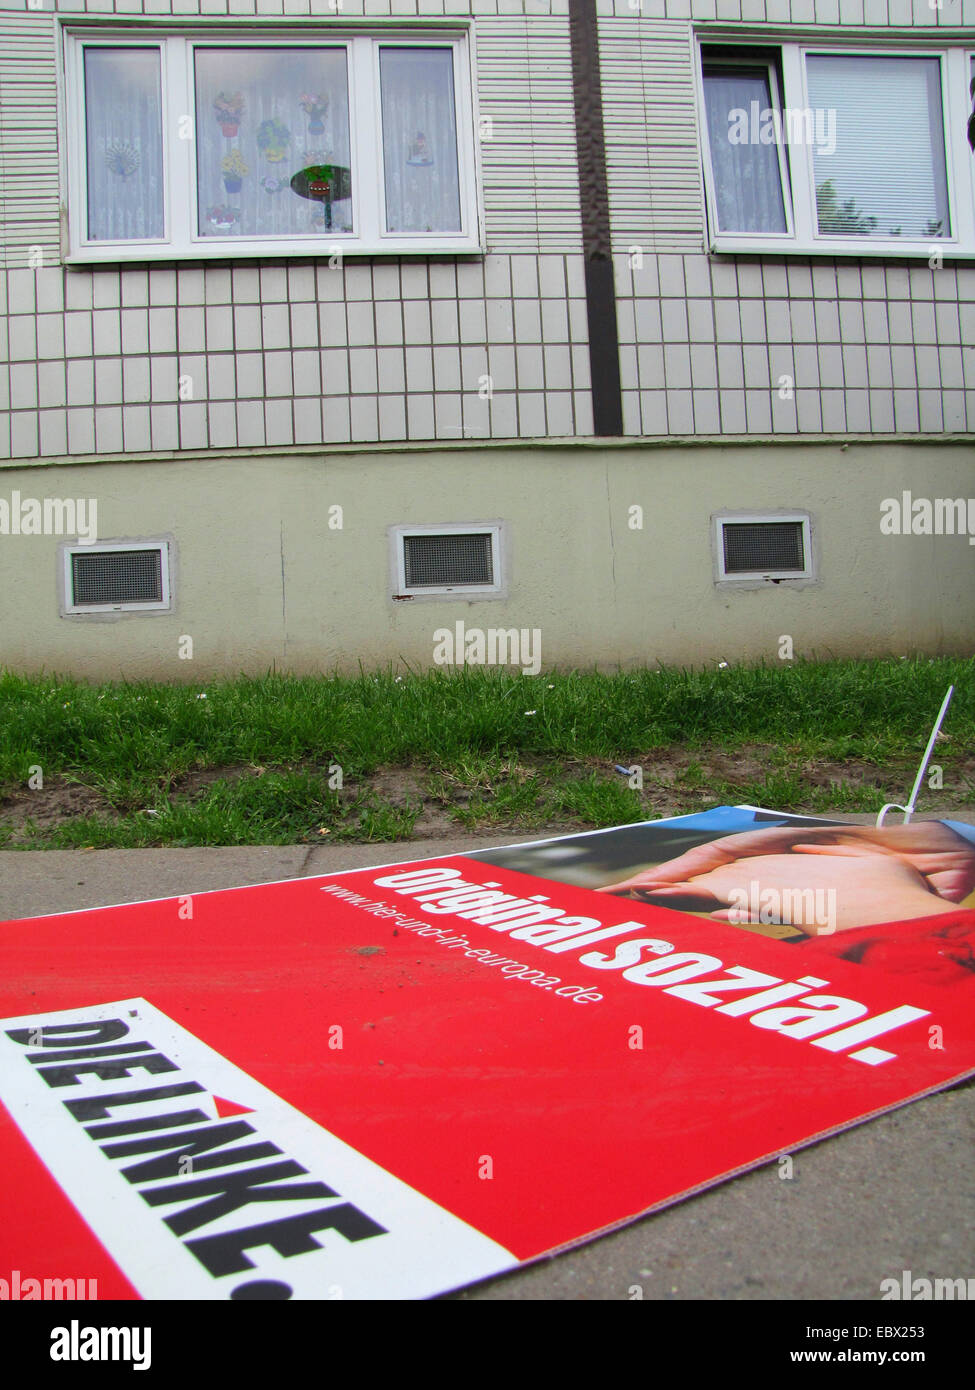 housing estate in former East Germany, socialist buildings, election poster of the left-wing party 'Die Linke' - Stock Image